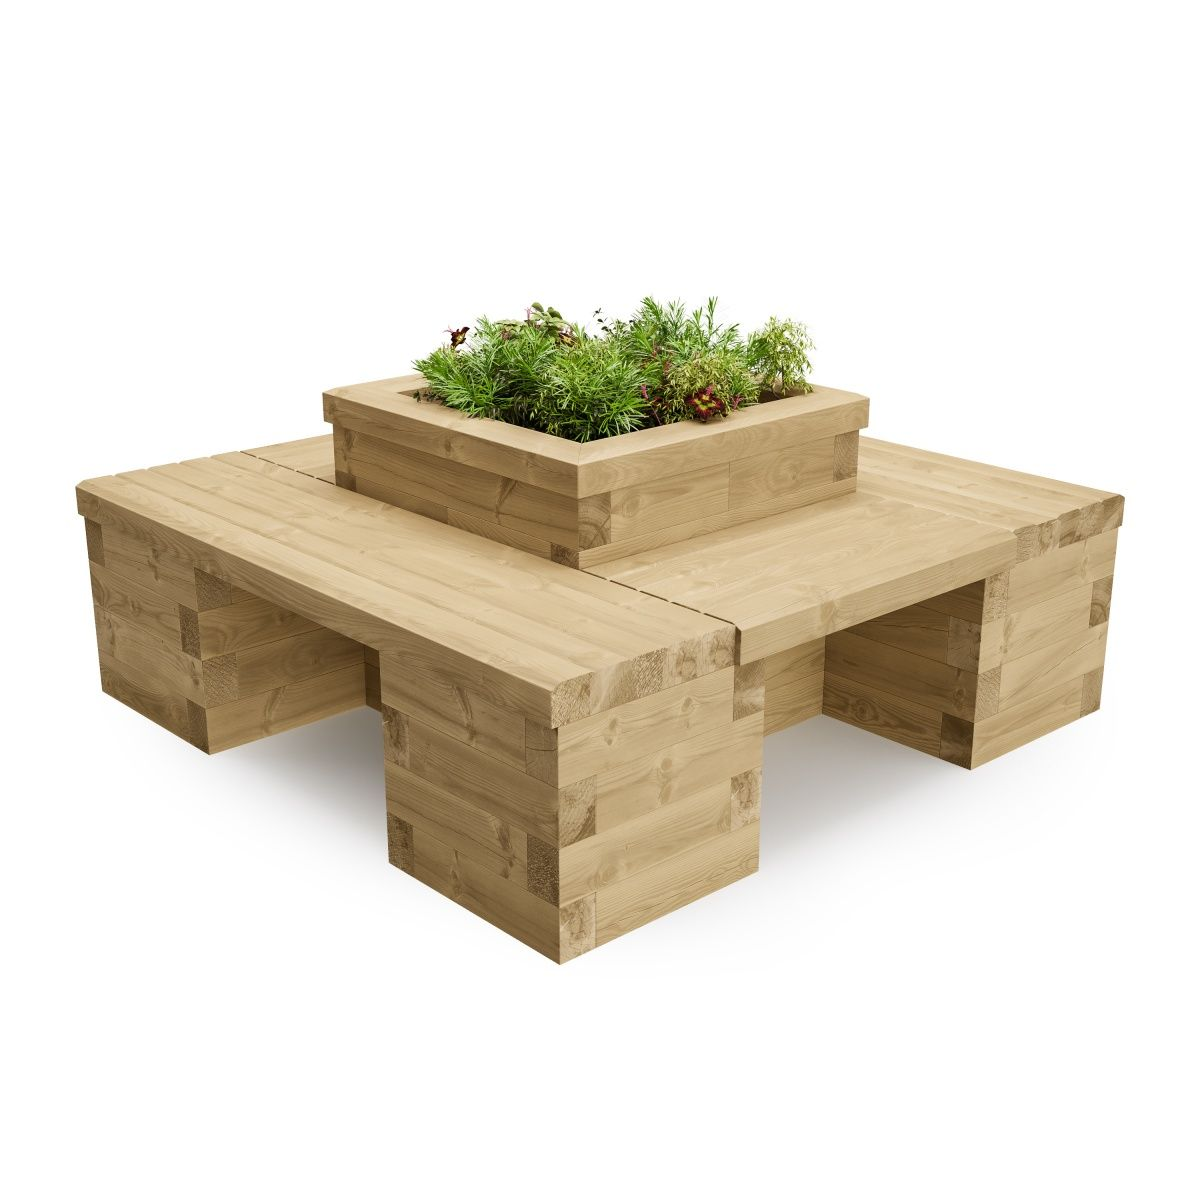 Pin by Tessuto Design on School Garden | Pinterest | Planters and ...